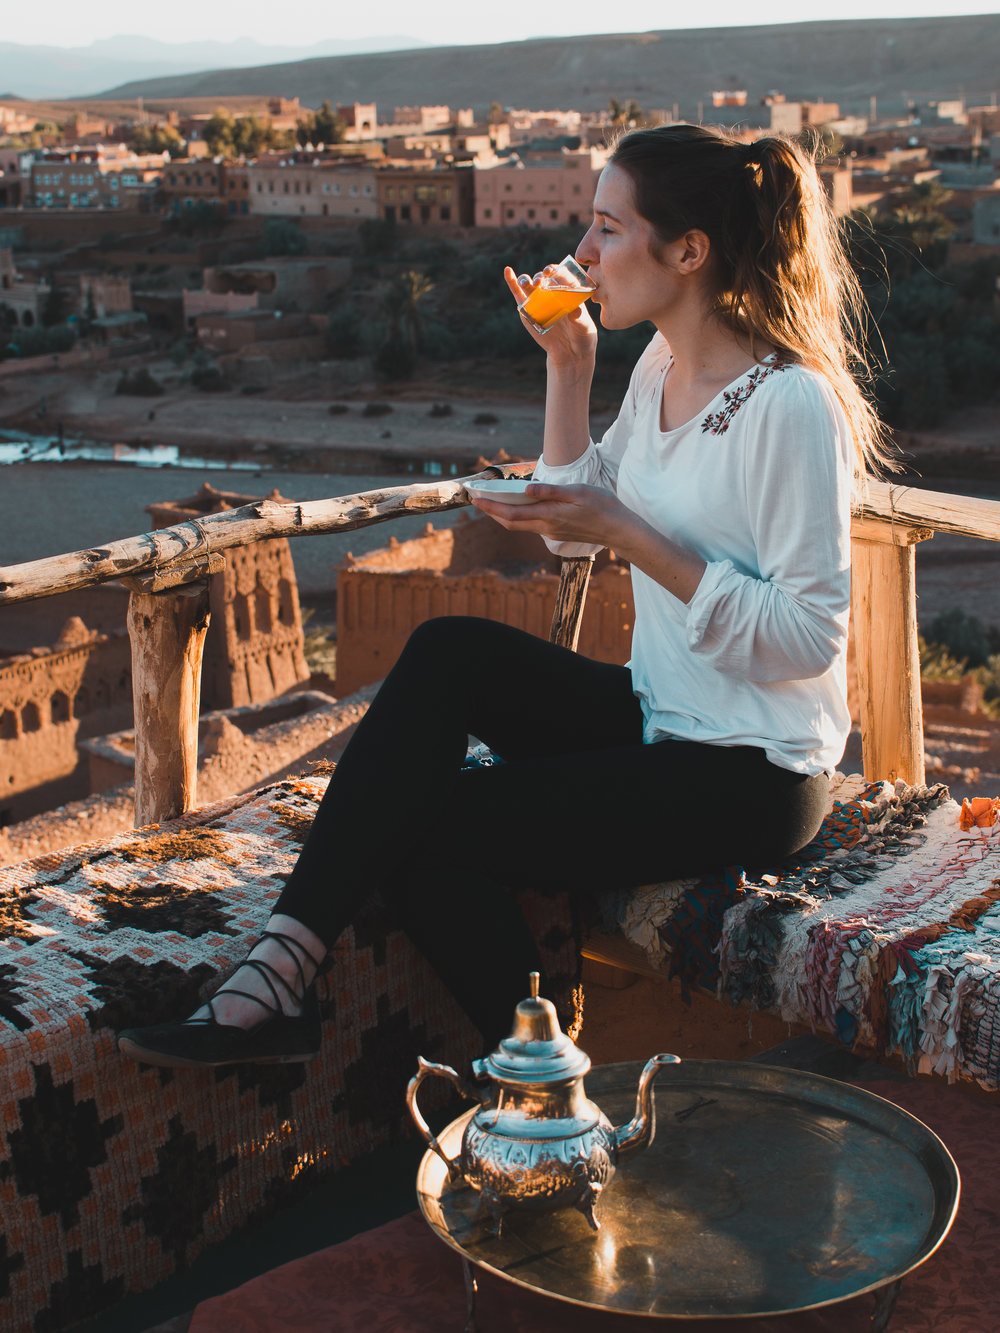 Make sure to count your change in Morocco